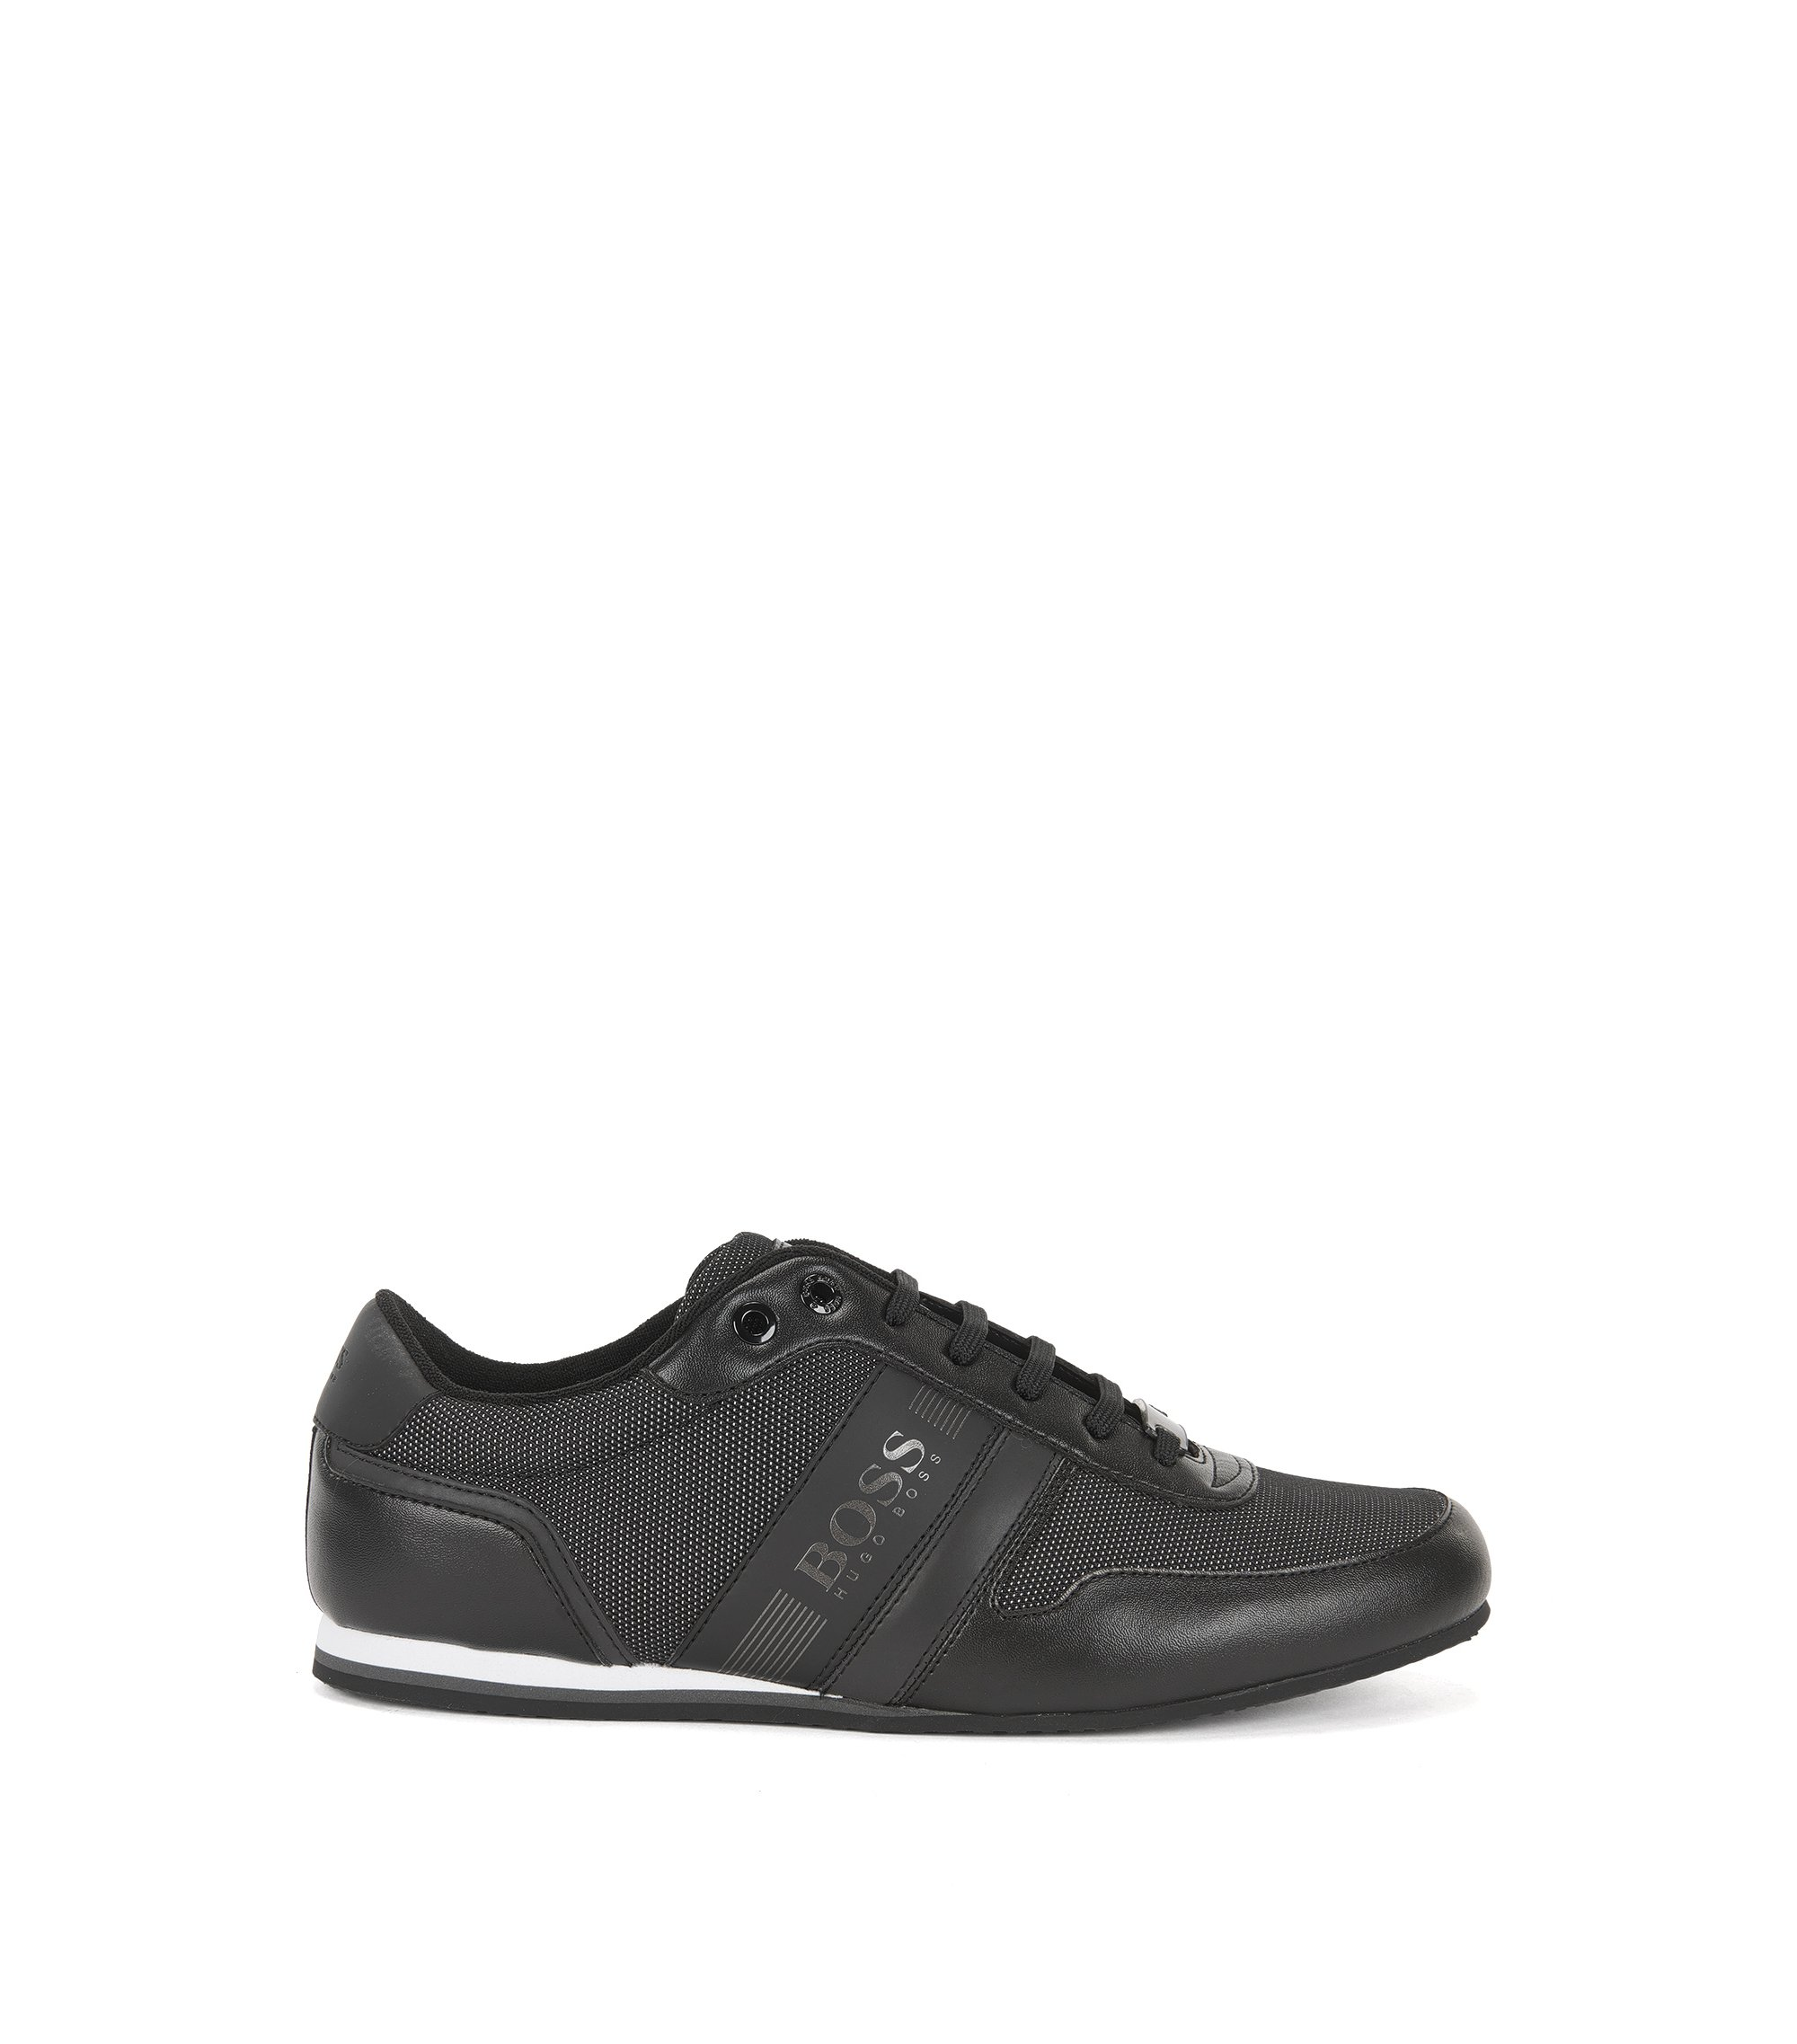 Sneakers low-top con tomaia riflettente, Nero